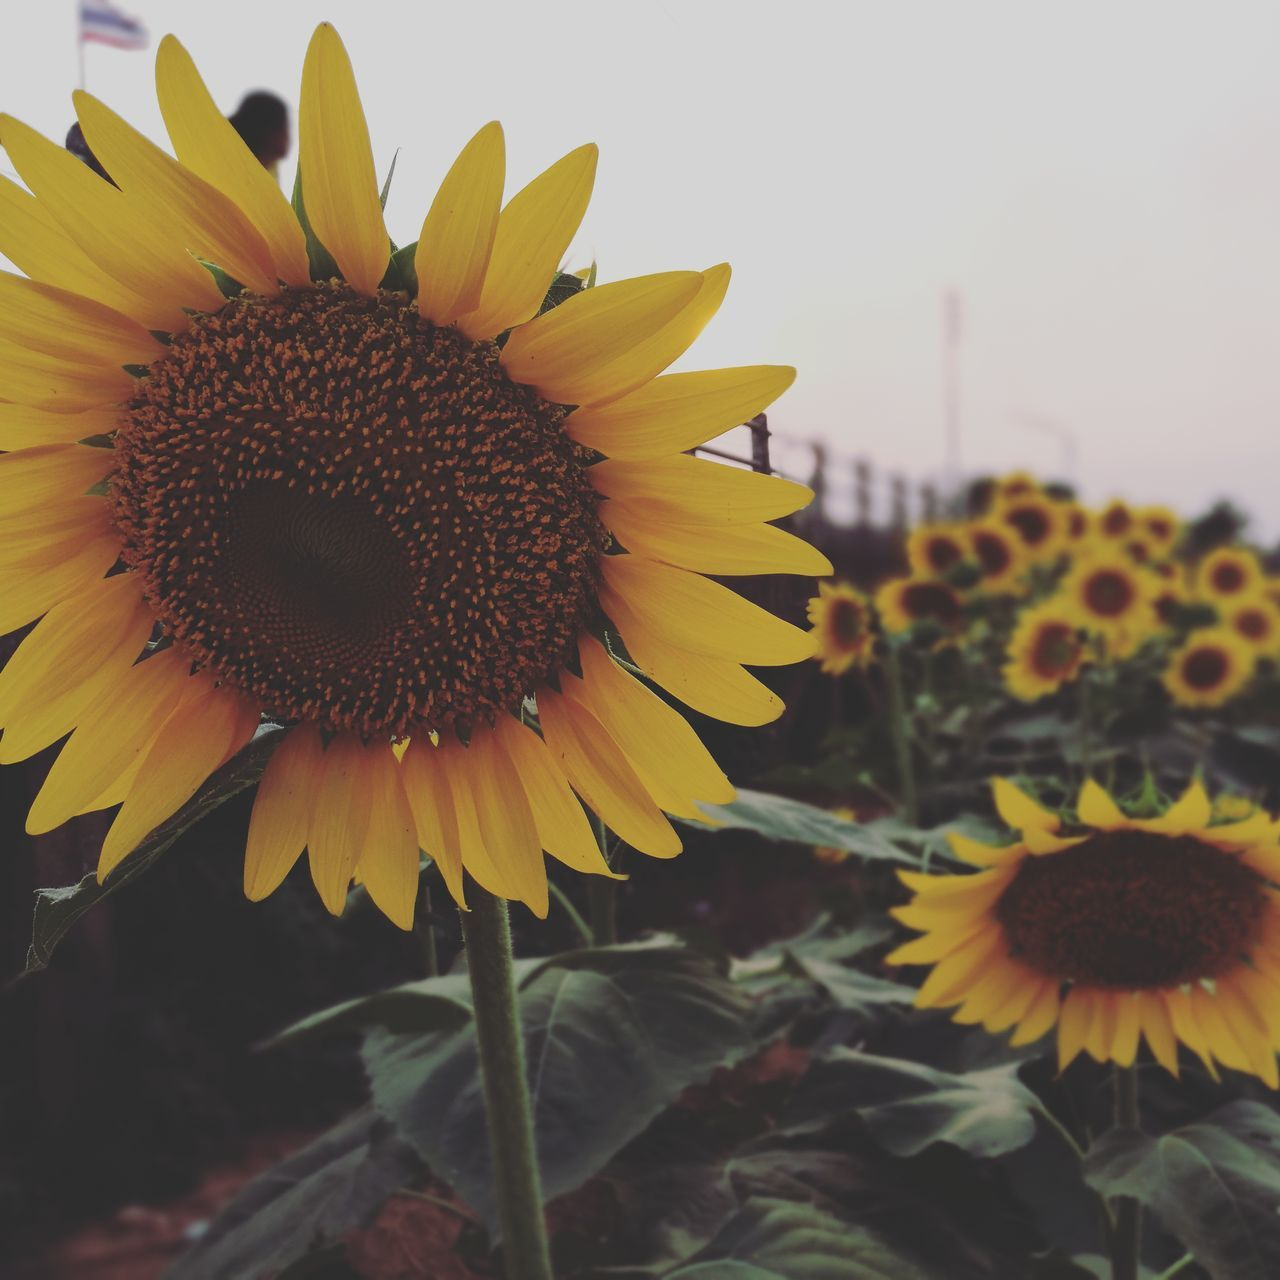 flower, yellow, petal, fragility, beauty in nature, nature, growth, flower head, sunflower, plant, freshness, pollen, outdoors, close-up, no people, day, blooming